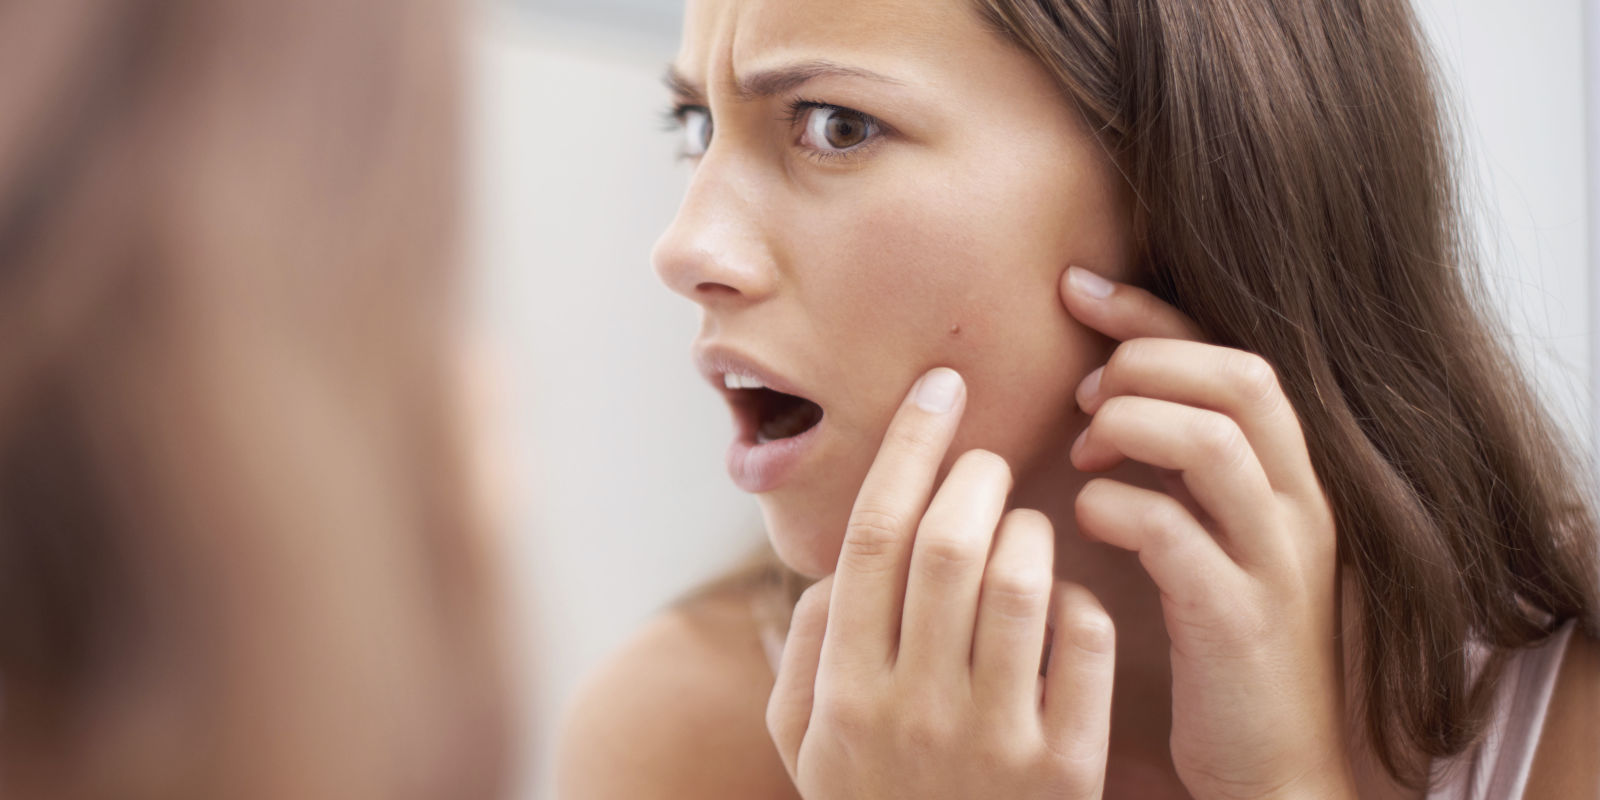 We all react like her when we get pimples or acne.